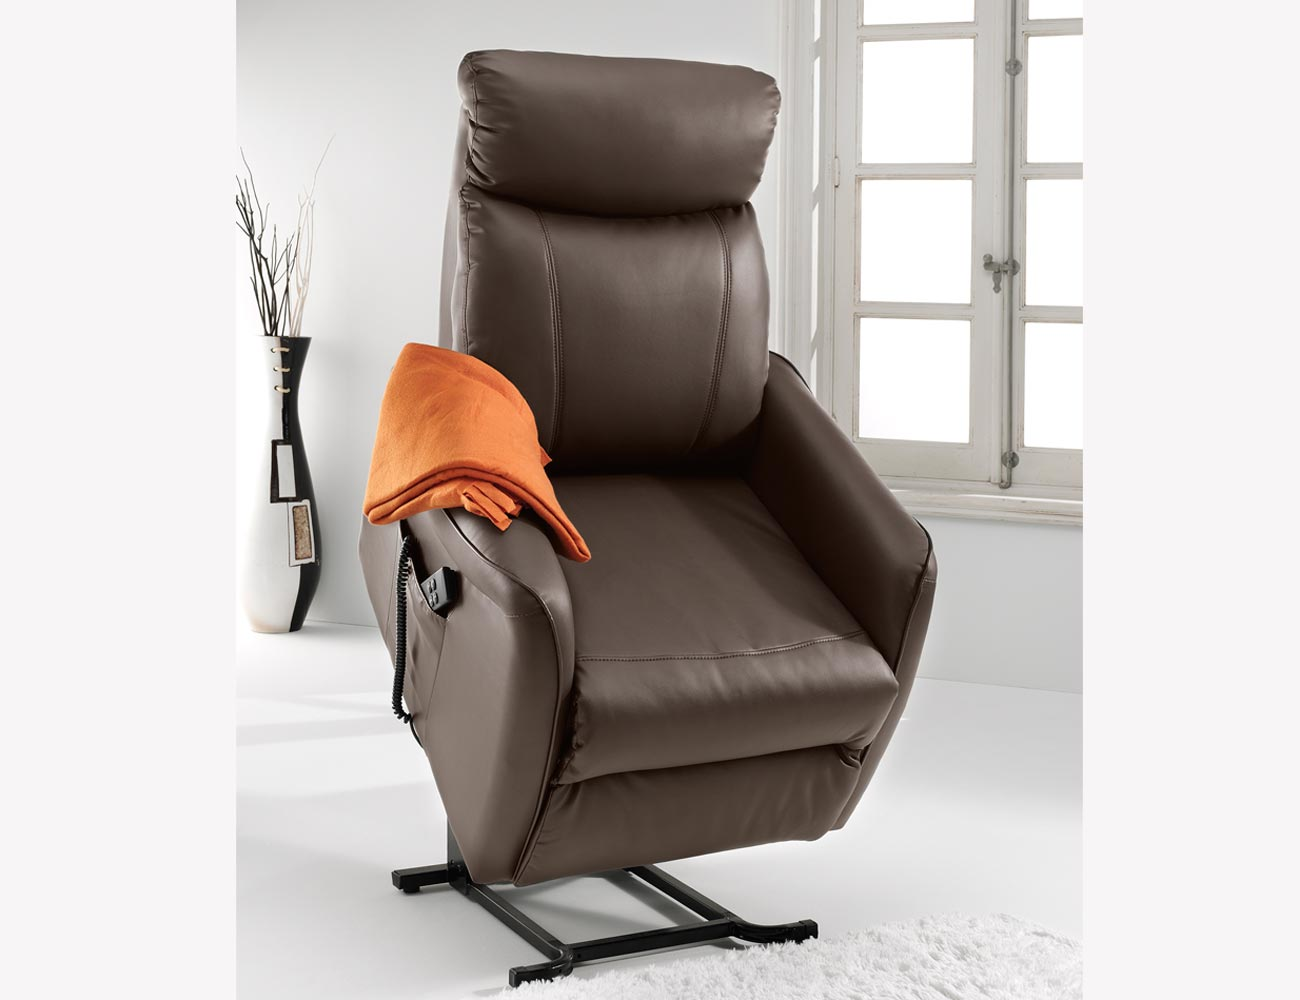 Sillon relax dos motores power lift levanta personas simil piel 2